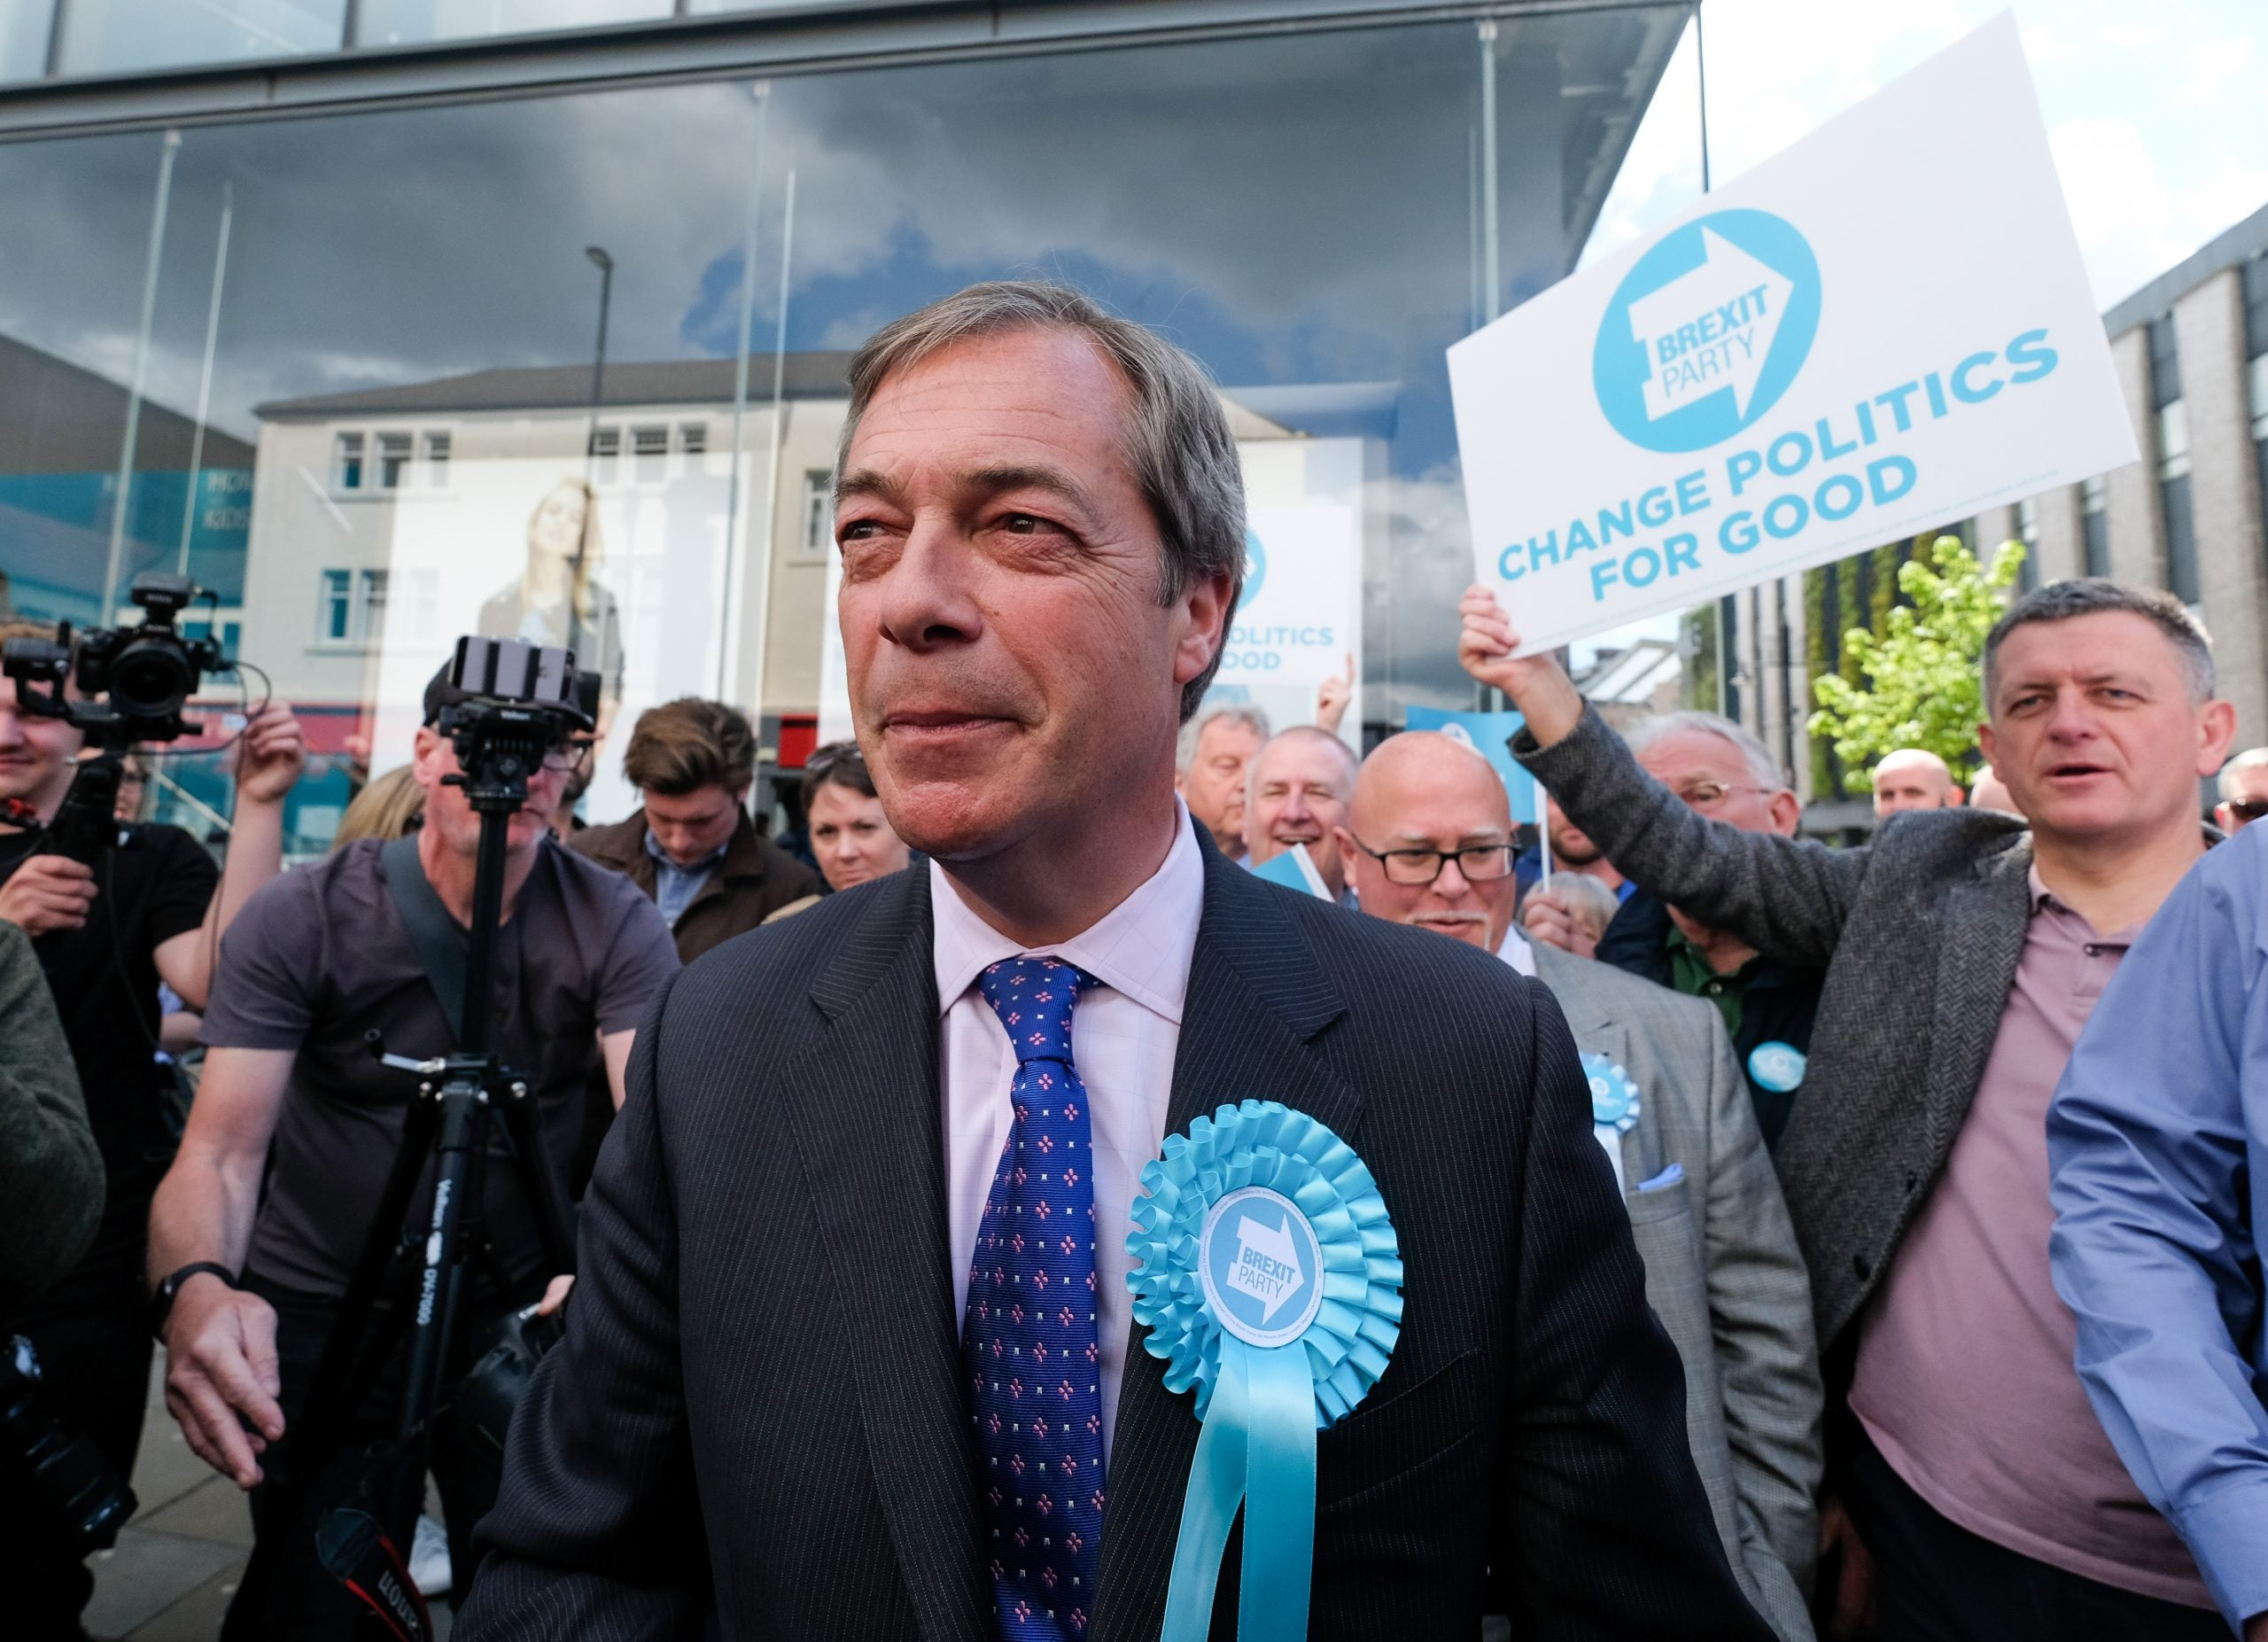 The Conservatives may see no-deal as their only chance of defeating Nigel Farage